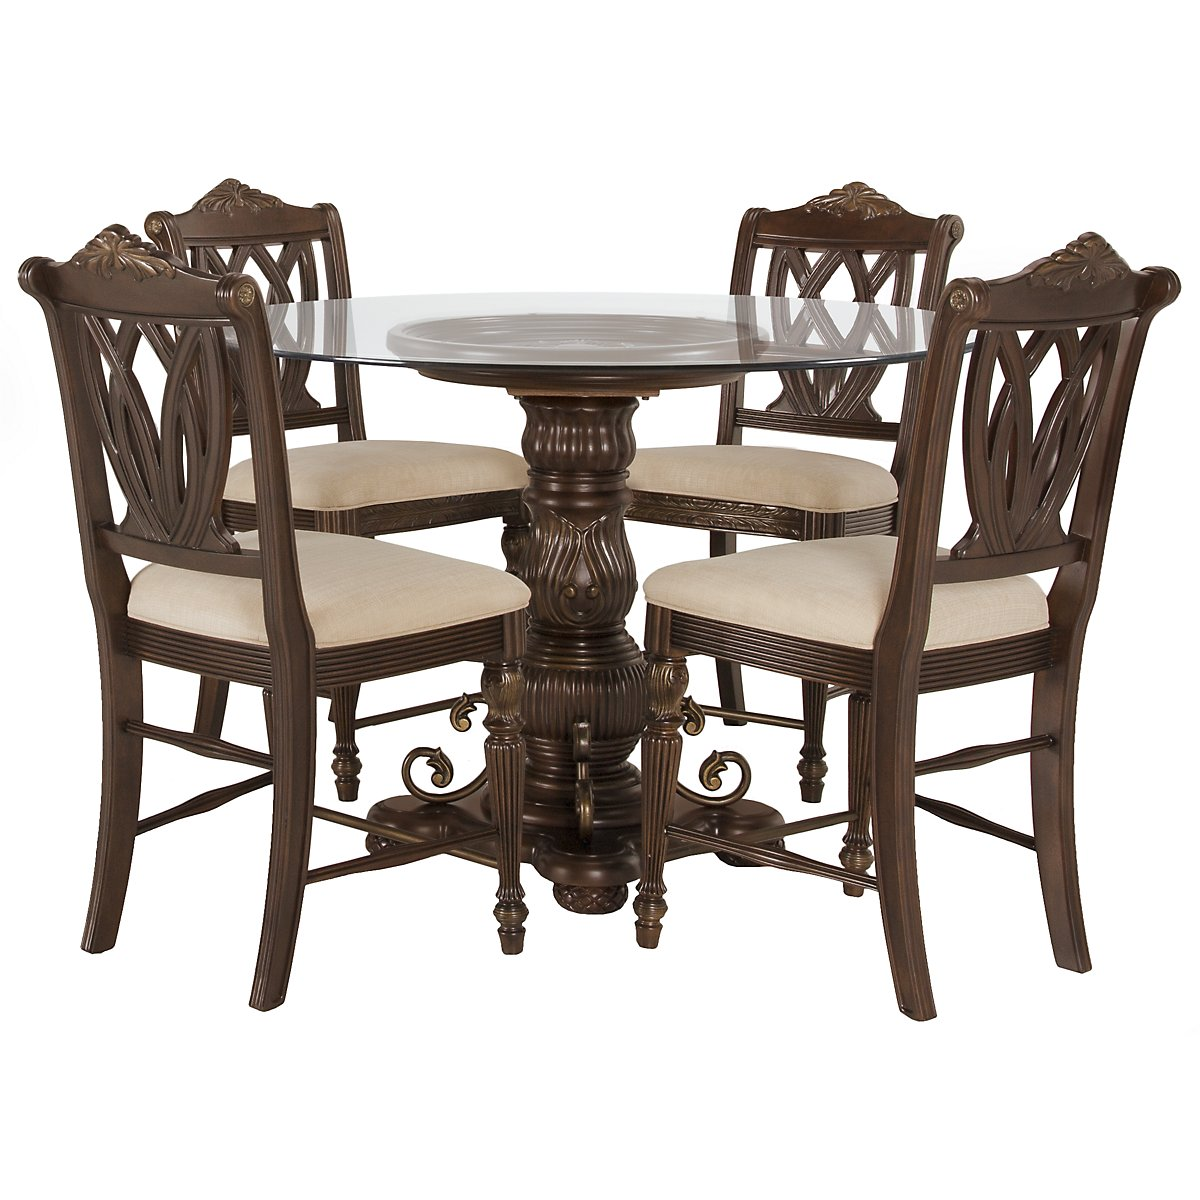 Tradewinds Dark Tone Glass High Table & 4 Wood Barstools